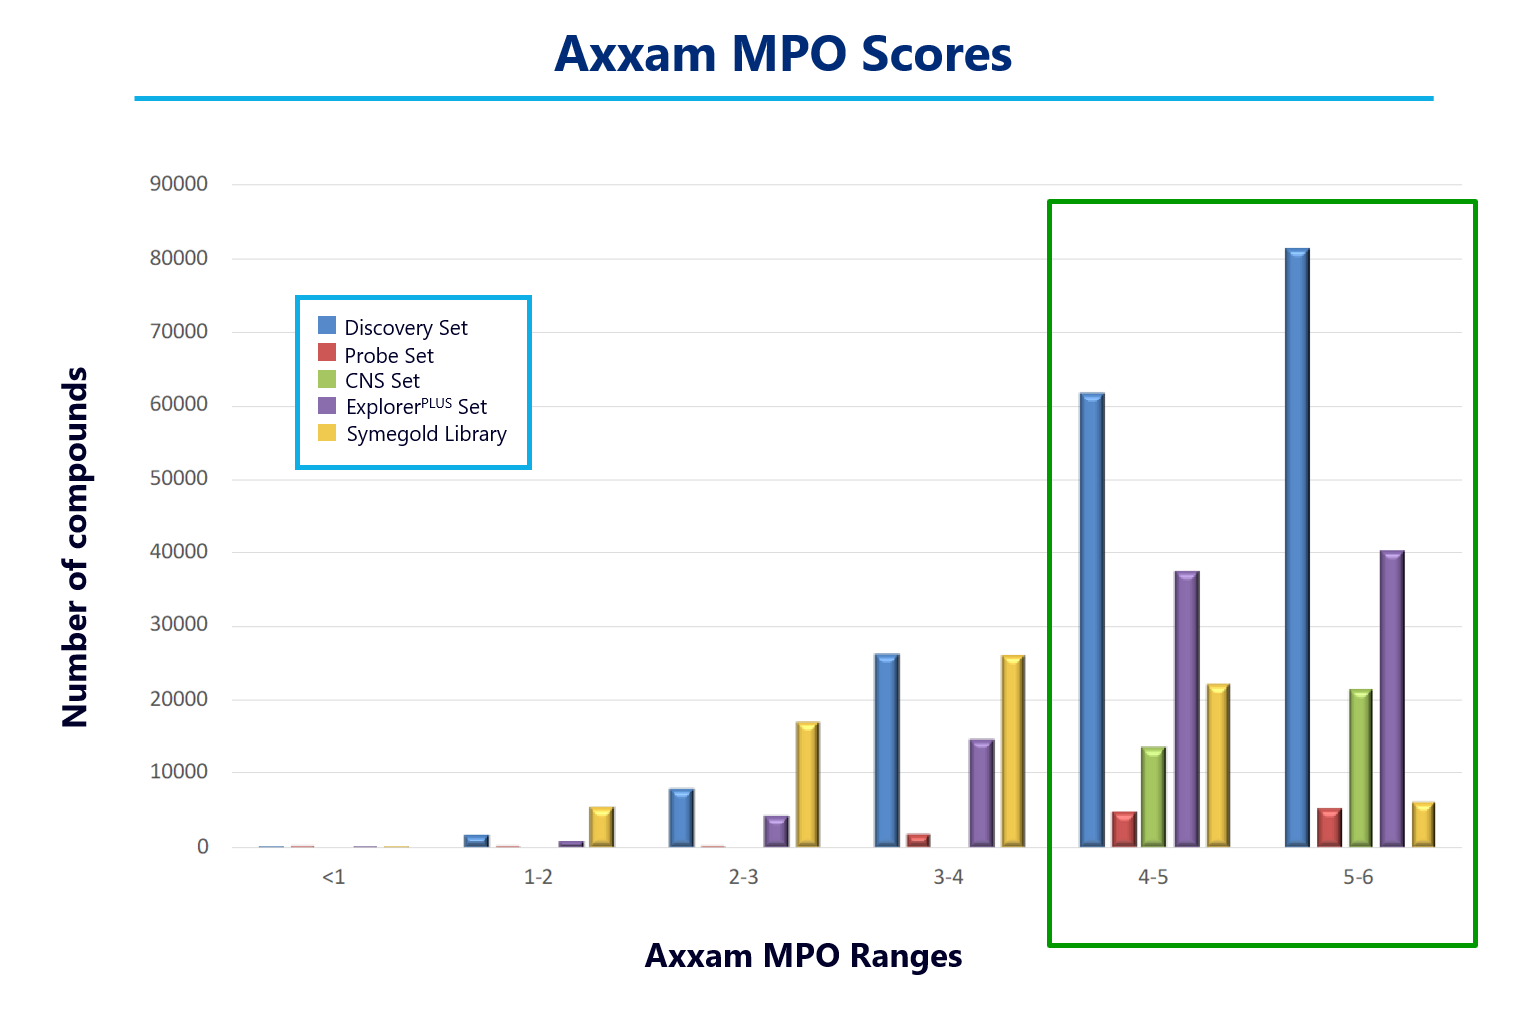 Axxam MPO scores of the Axxam compound collections